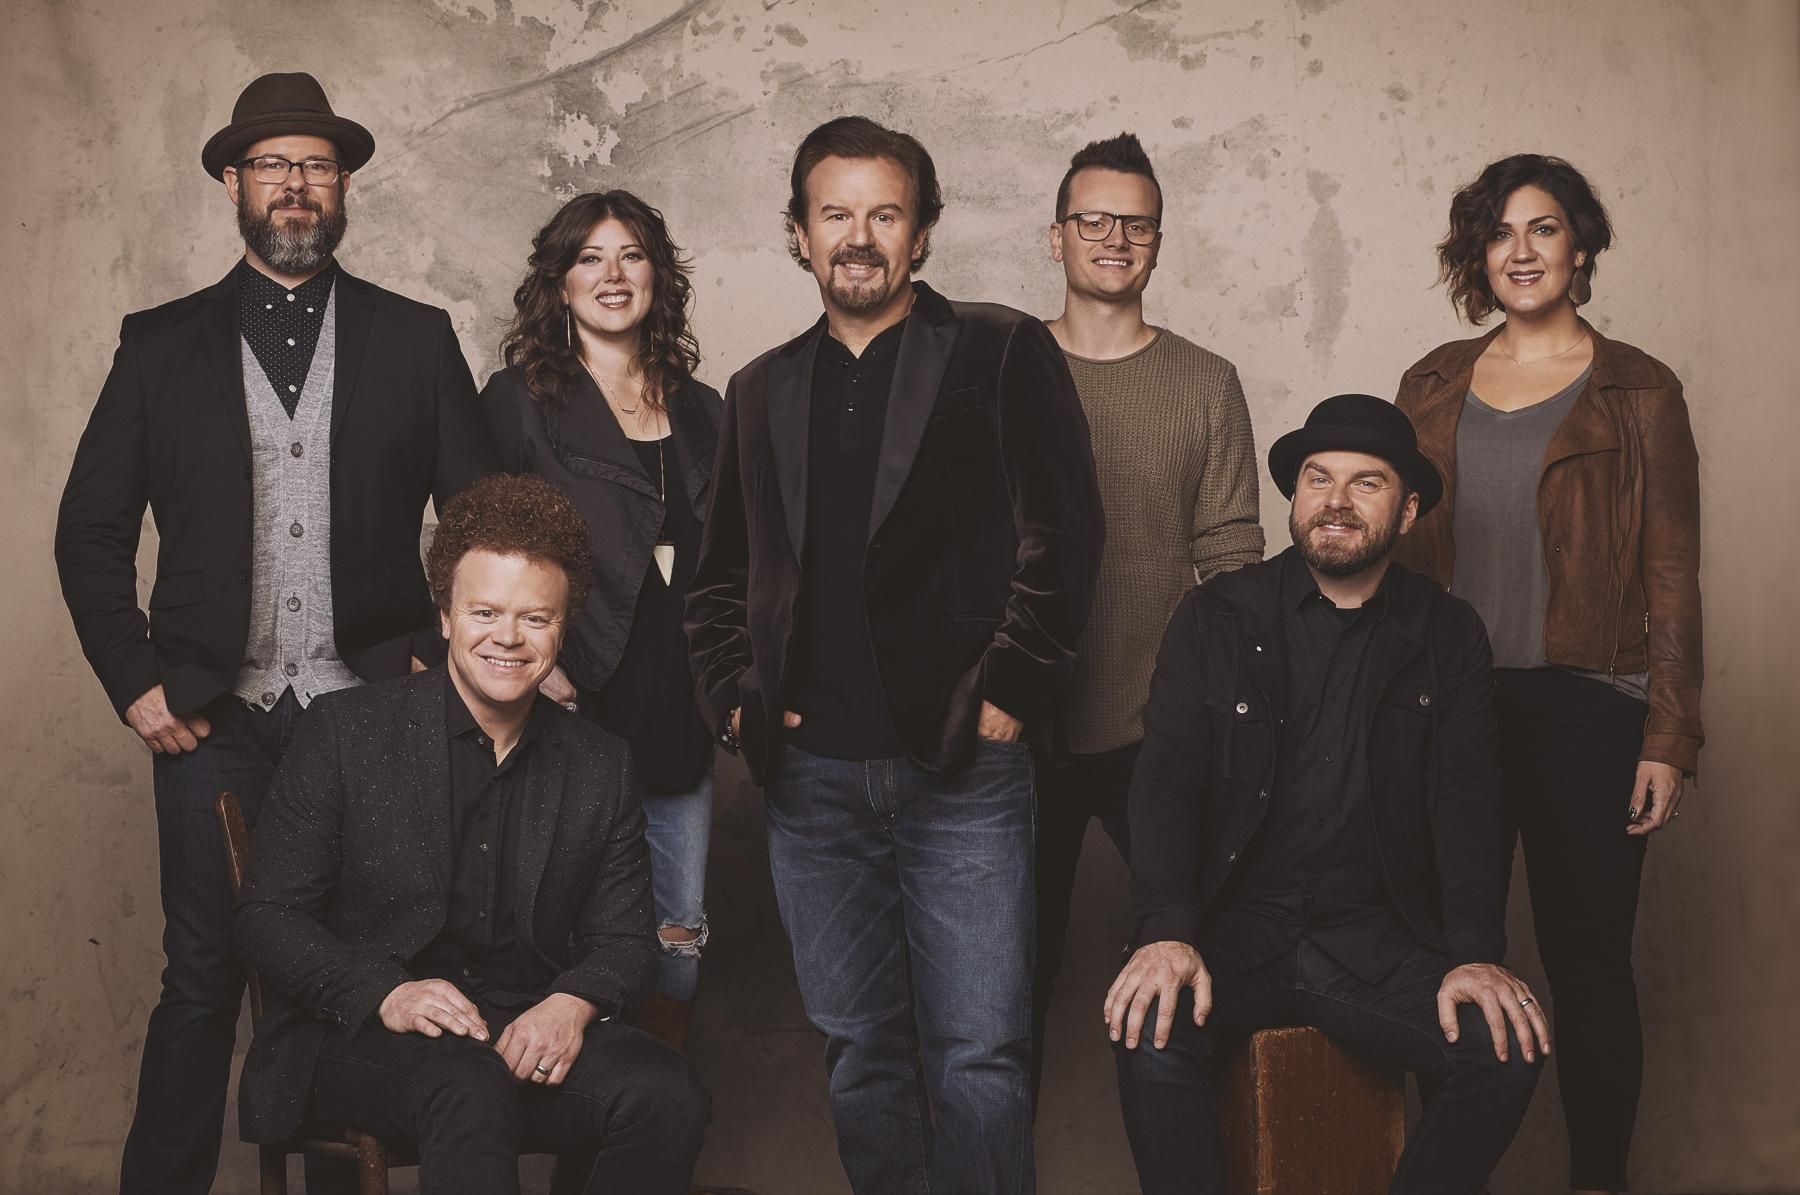 Casting Crowns will perform a mix of Christmas tunes and chart-topping hits on the